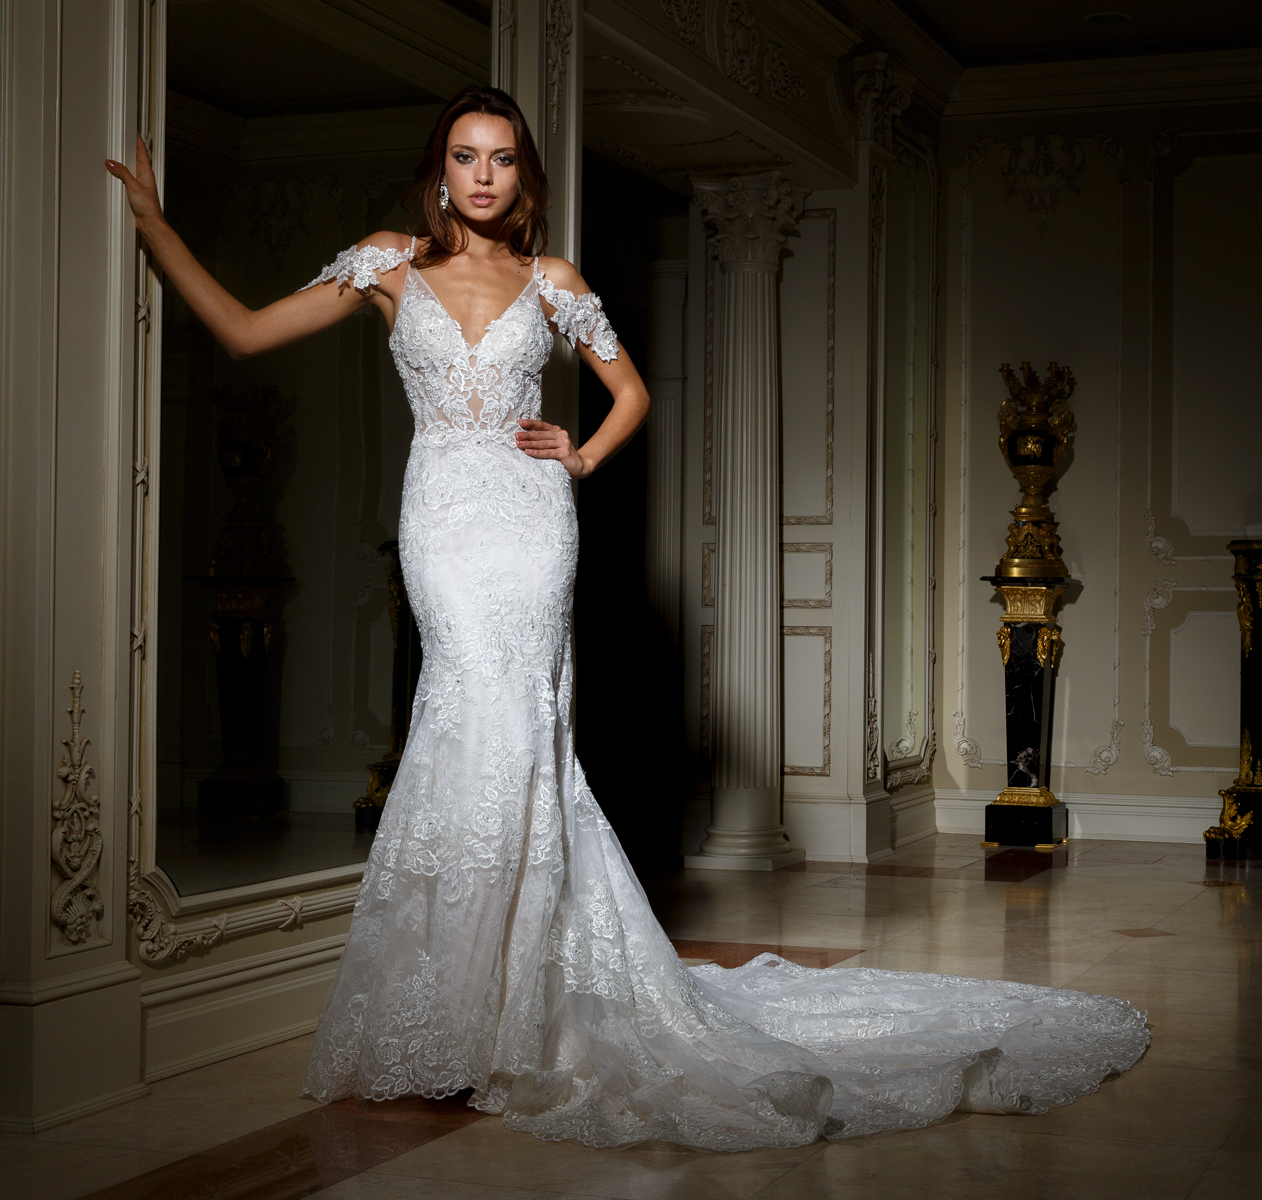 Deep Sweetheart Neckline Beaded Lace Fit And Flare Wedding Dress ...